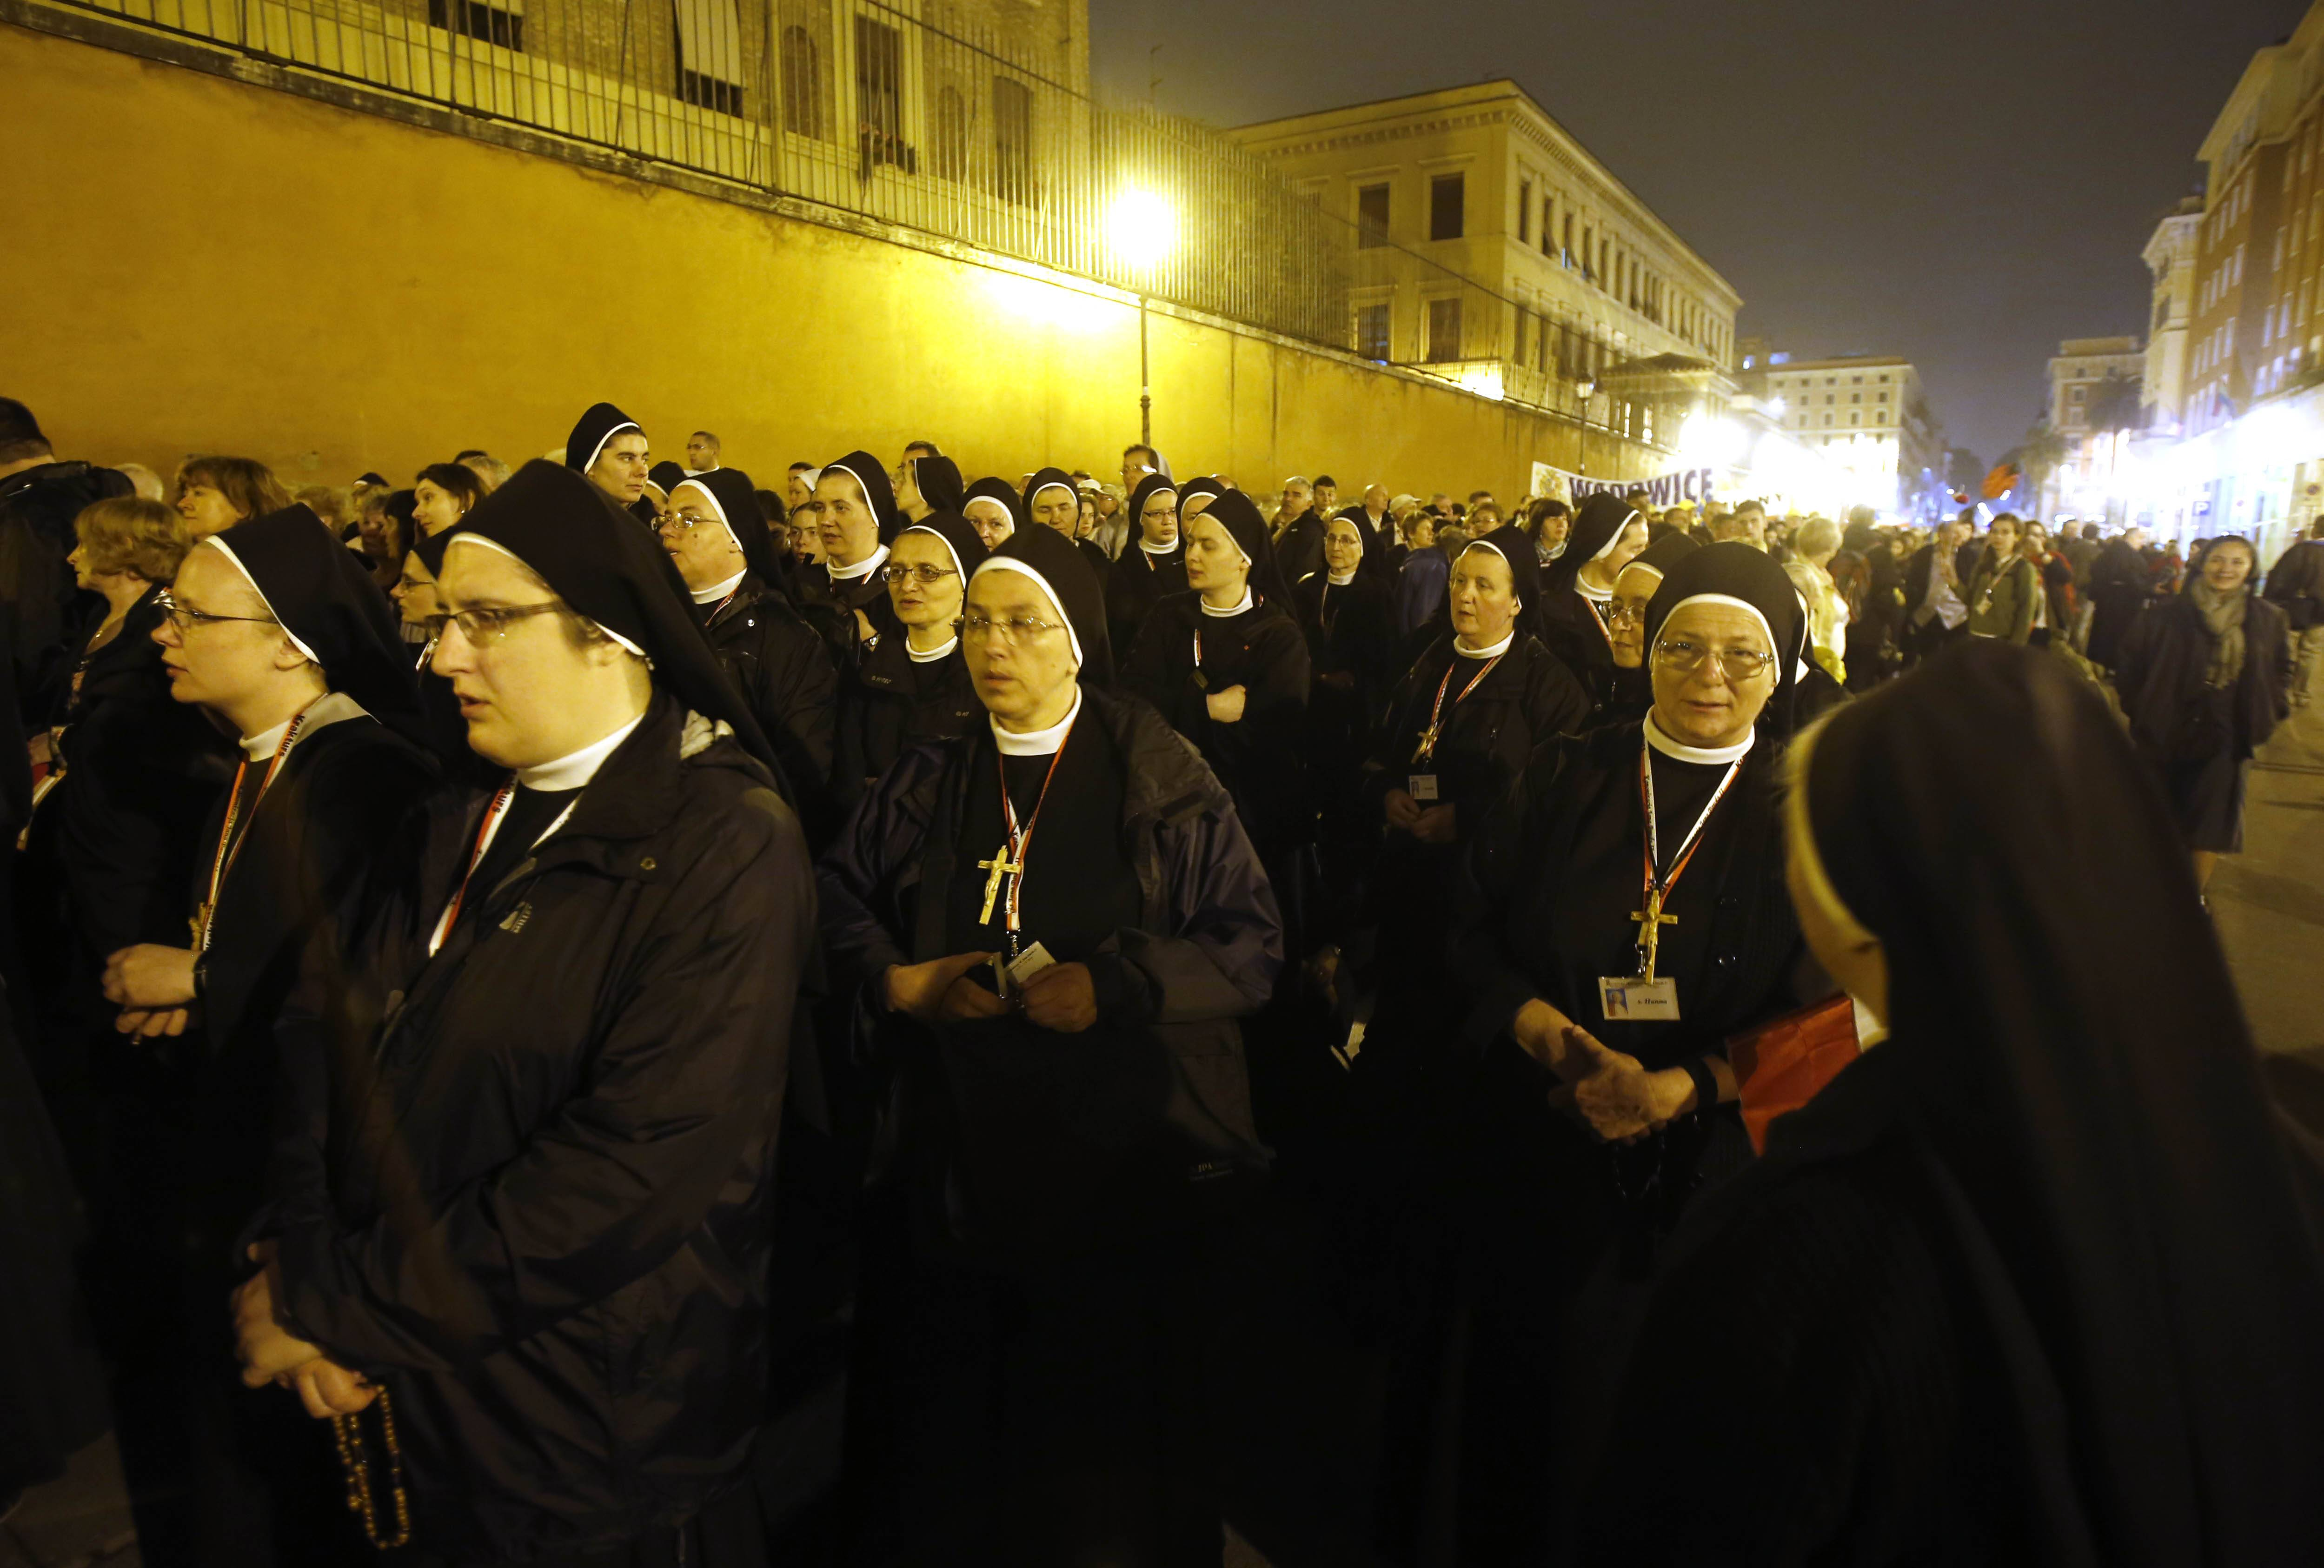 A group of Polish nuns wait to reach St. Peter's Square hours before the ceremony for the canonizations of Pope John XXIII and Pope John Paul II, at the Vatican, Sunday.